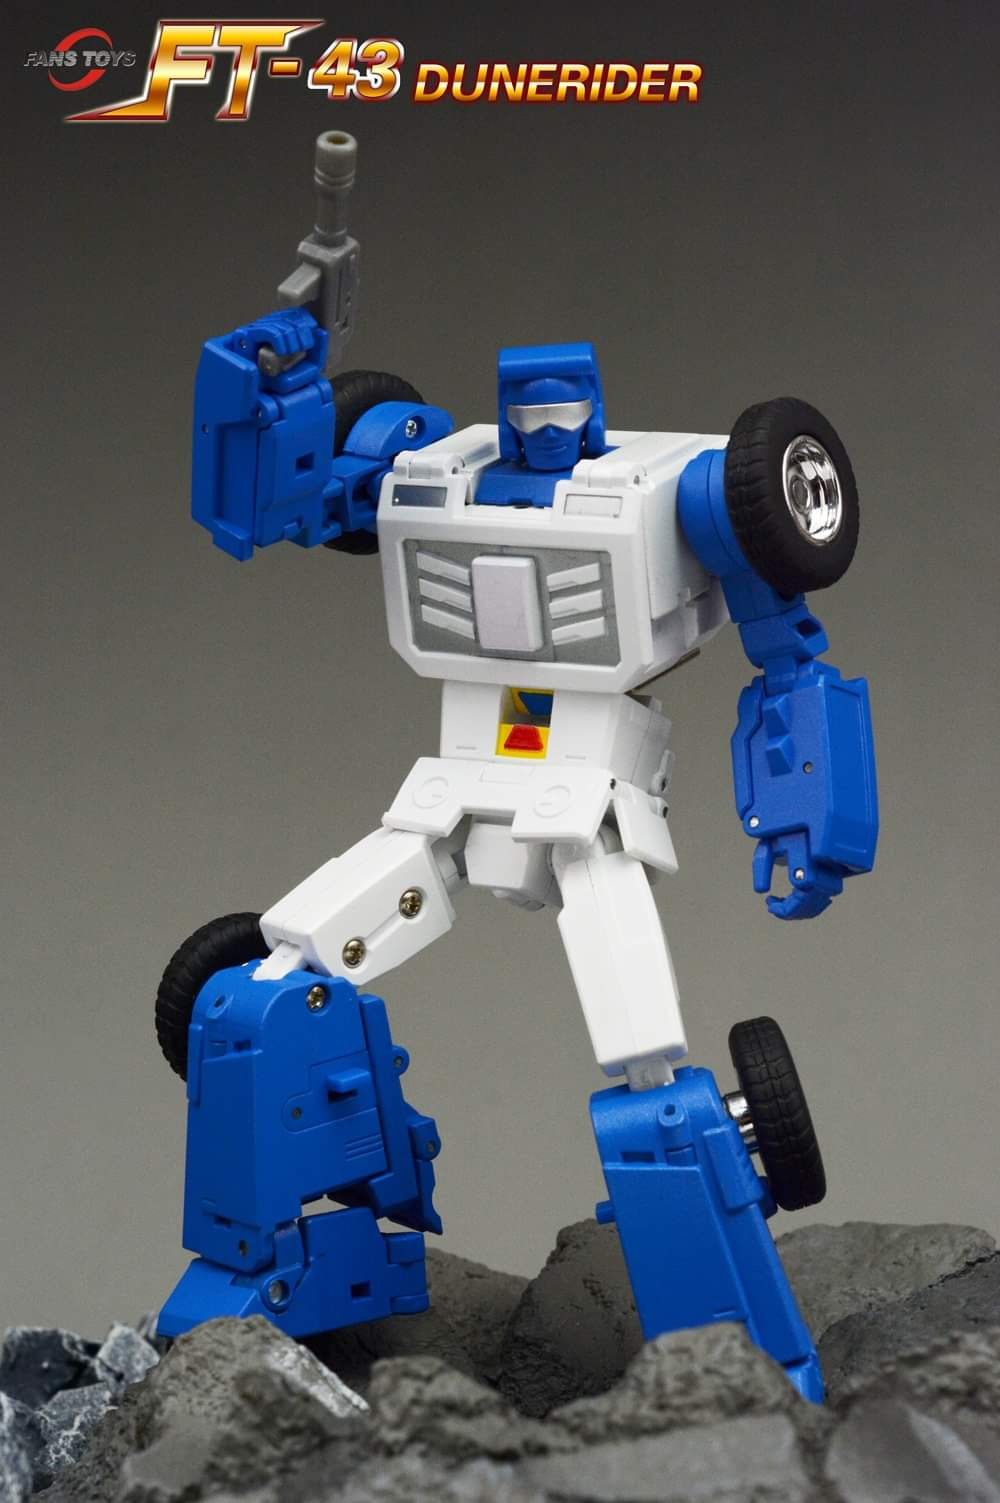 [Fanstoys] Produit Tiers - Minibots MP - Gamme FT - Page 3 WEyUWTLY_o